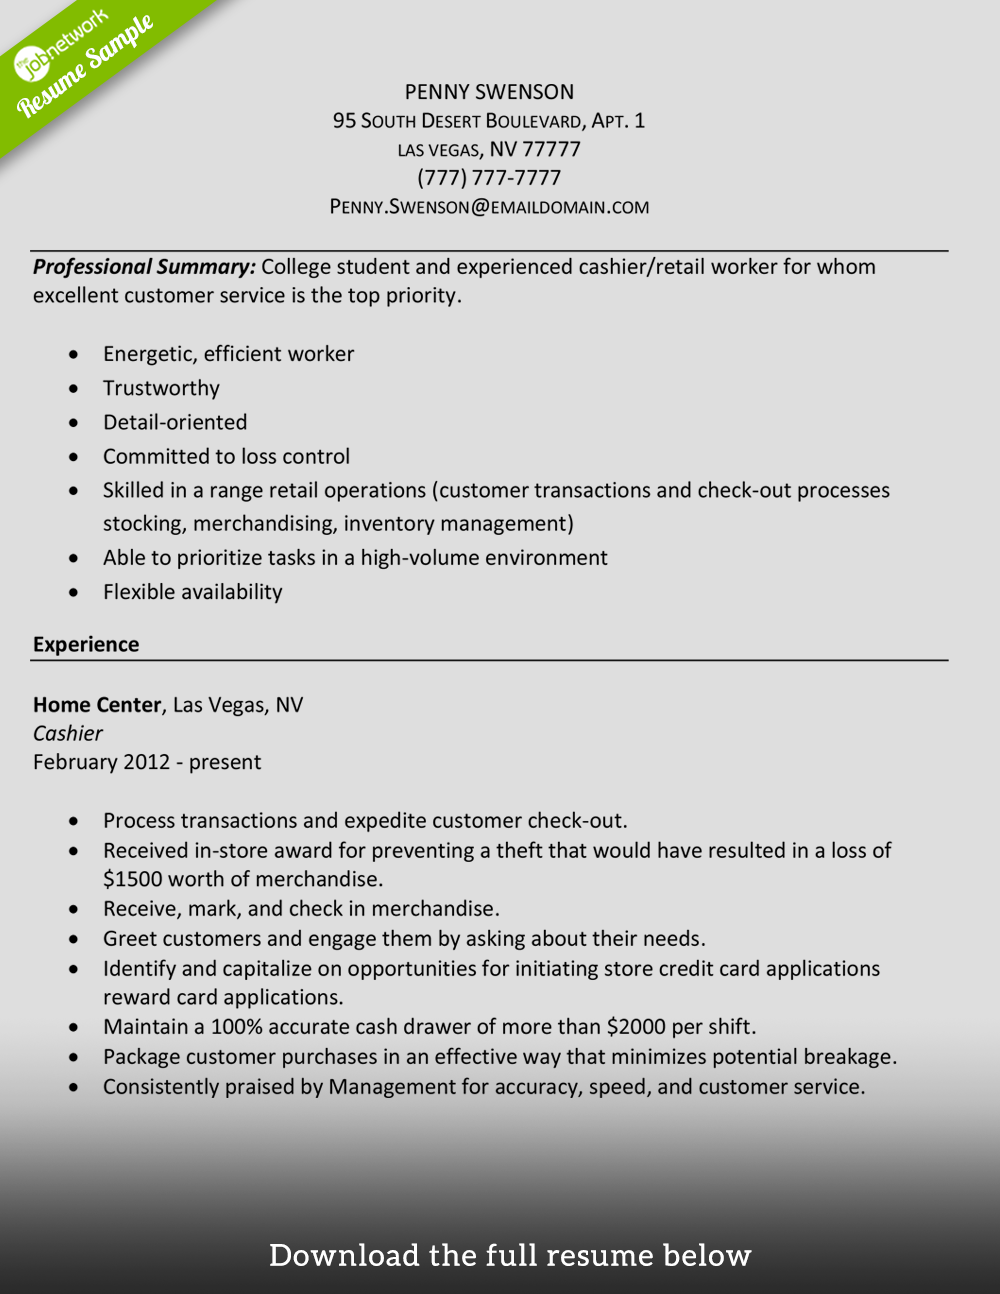 Cashier Resume Experienced In Retail  Cashier Resume Skills